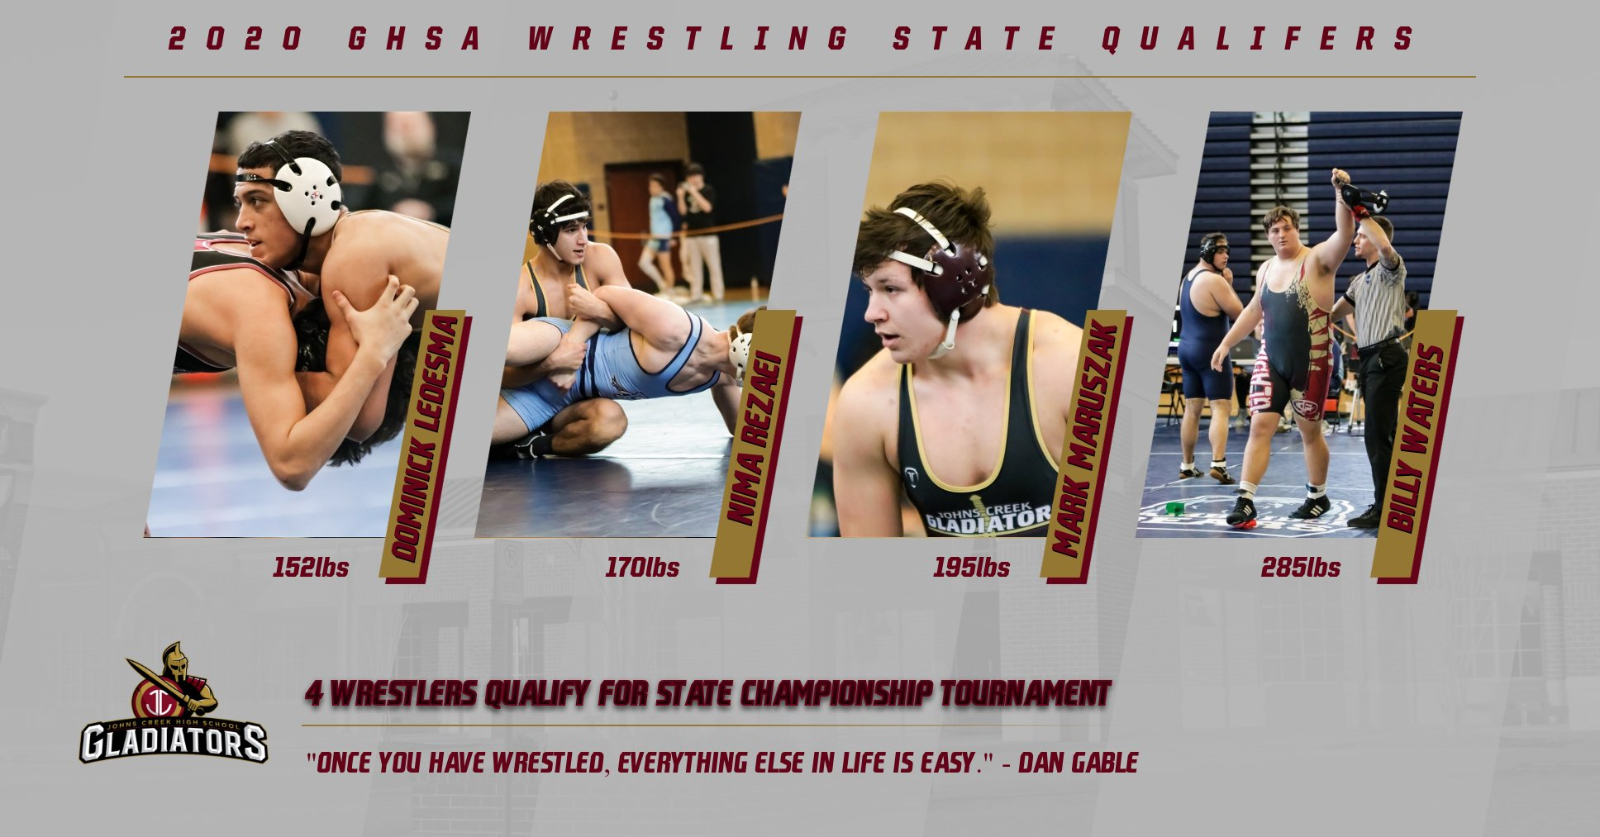 4 Wrestlers Qualify for State Tournament